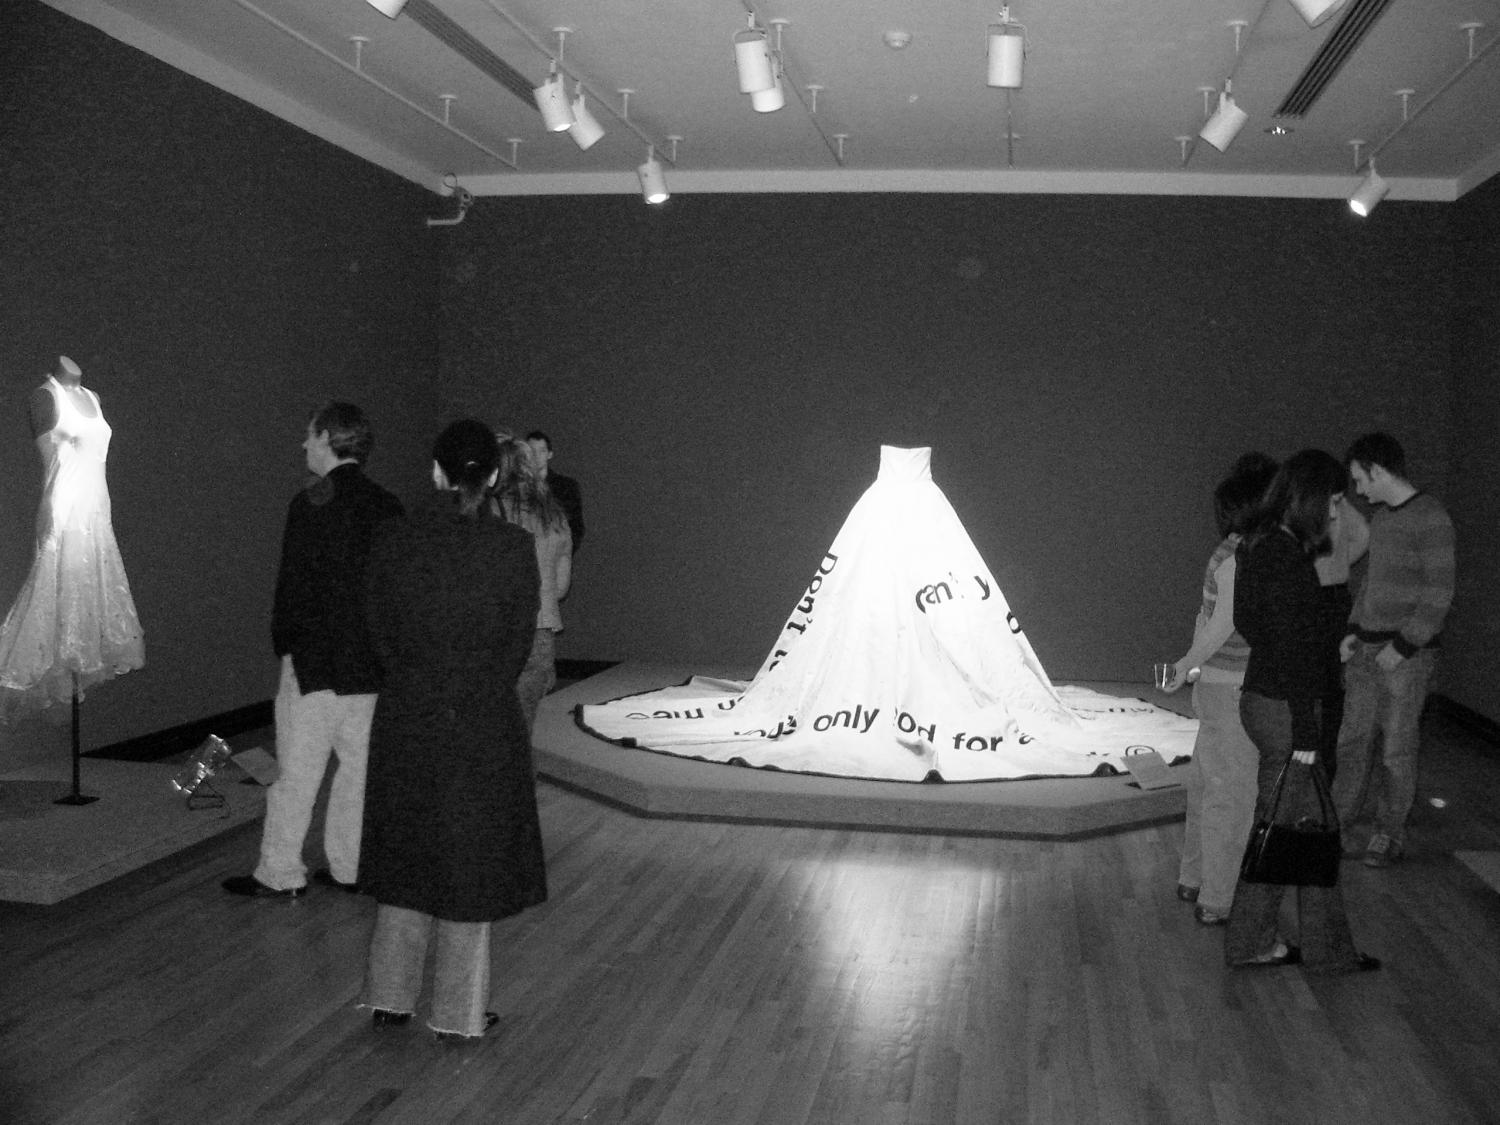 Pattern Language: Clothing as Communicator, installation at Krannert Art Museum, 2006.